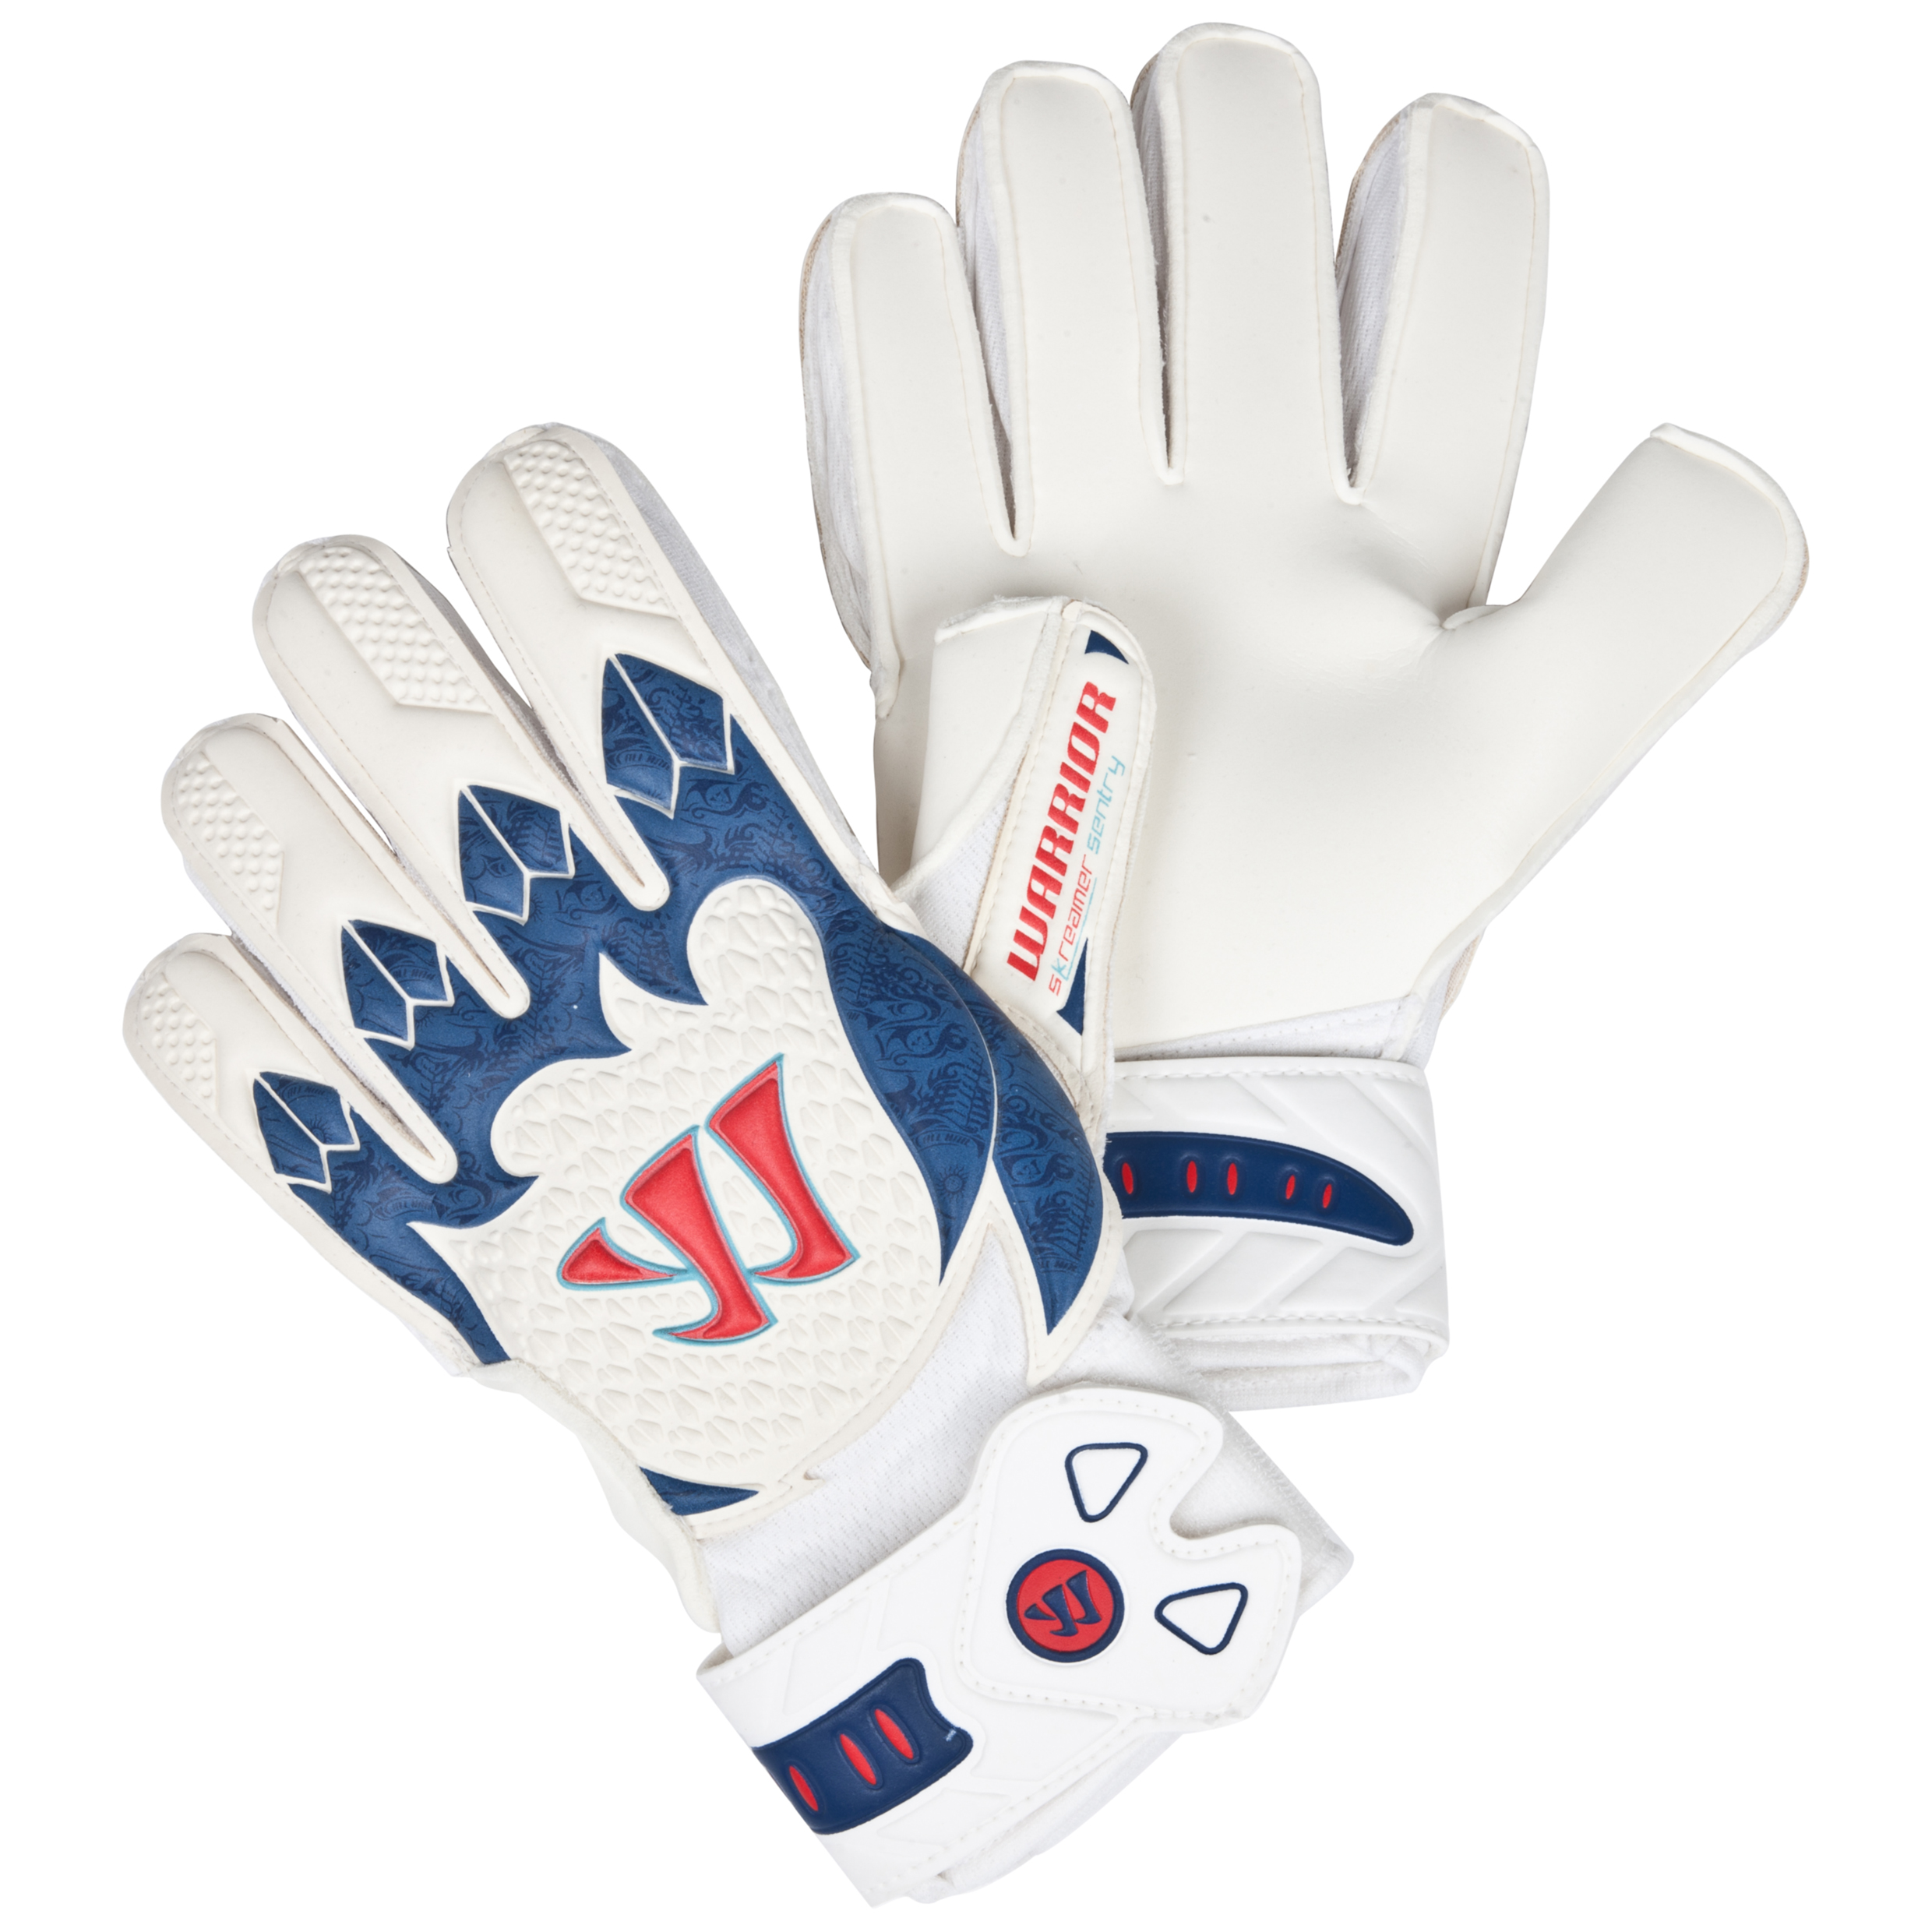 Warrior Sports Skreamer Sentry Goalkeeper Gloves-Wht/Navy/Red White